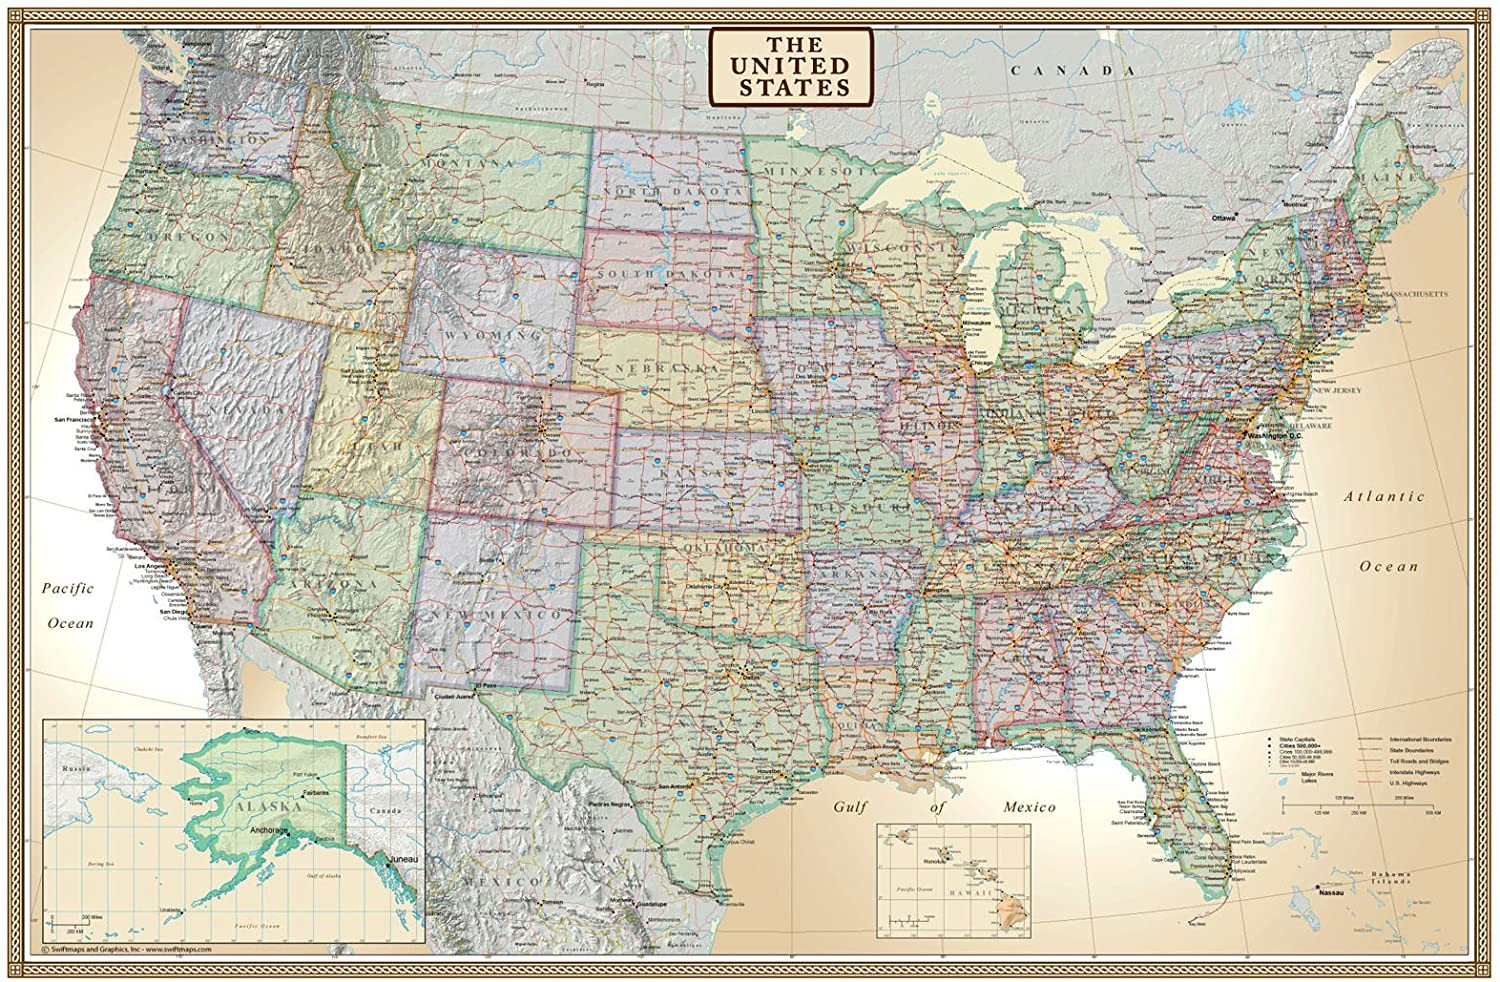 Wall Map Of Usa Amazon.: 24x36 United States, USA US Executive Wall Map Poster